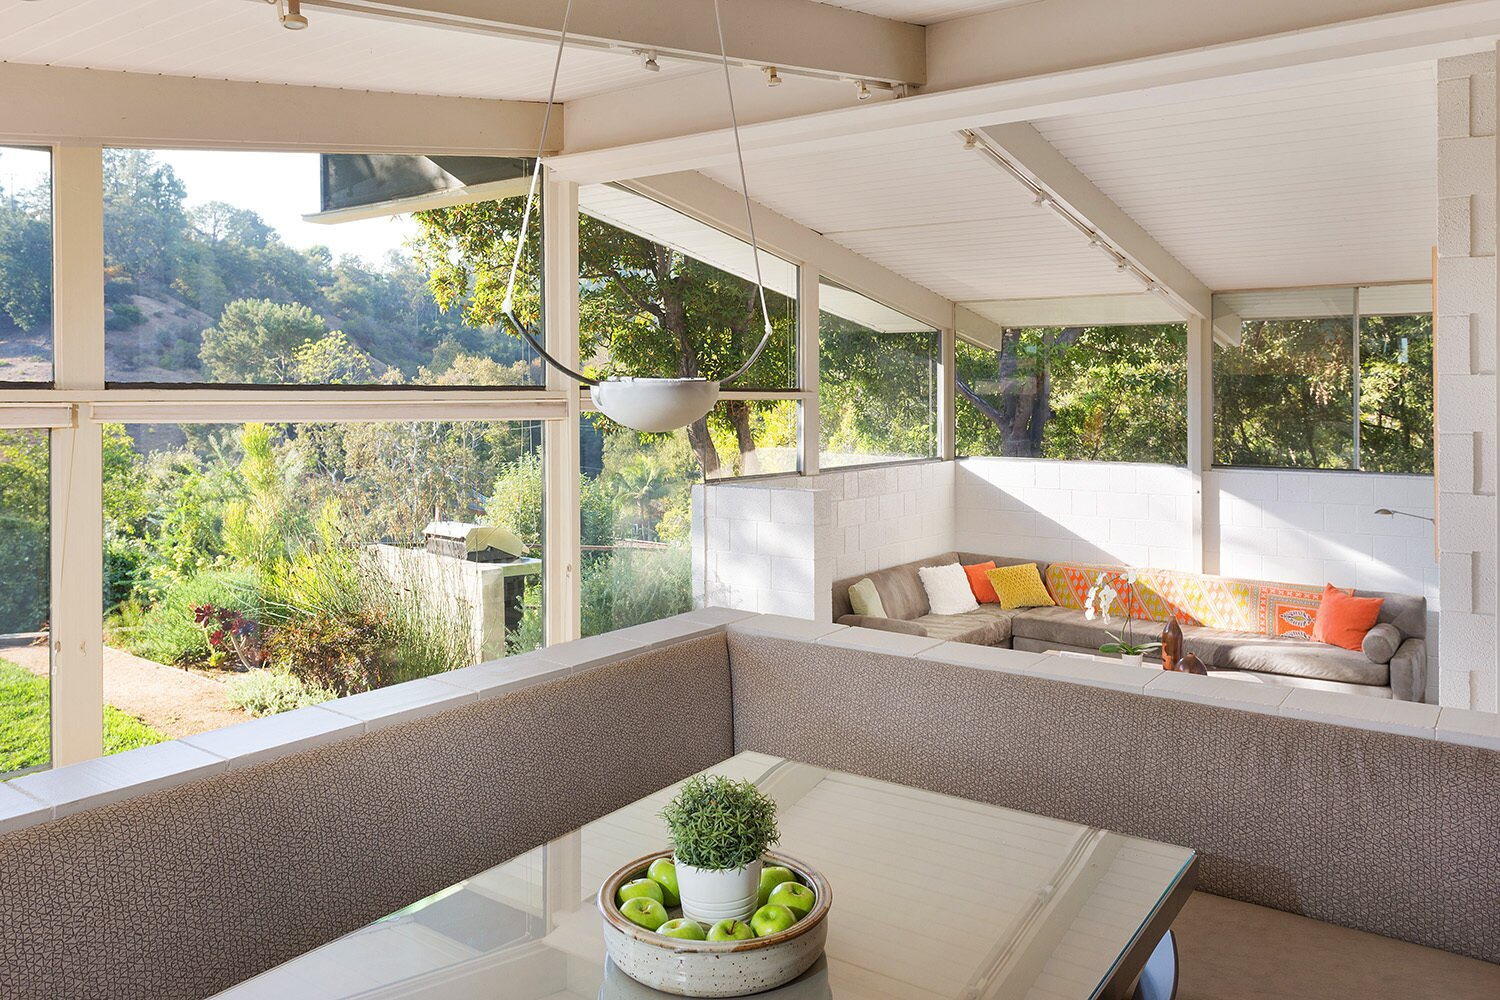 The Schott House by A. Quincy Jones and Whitney R. Smith